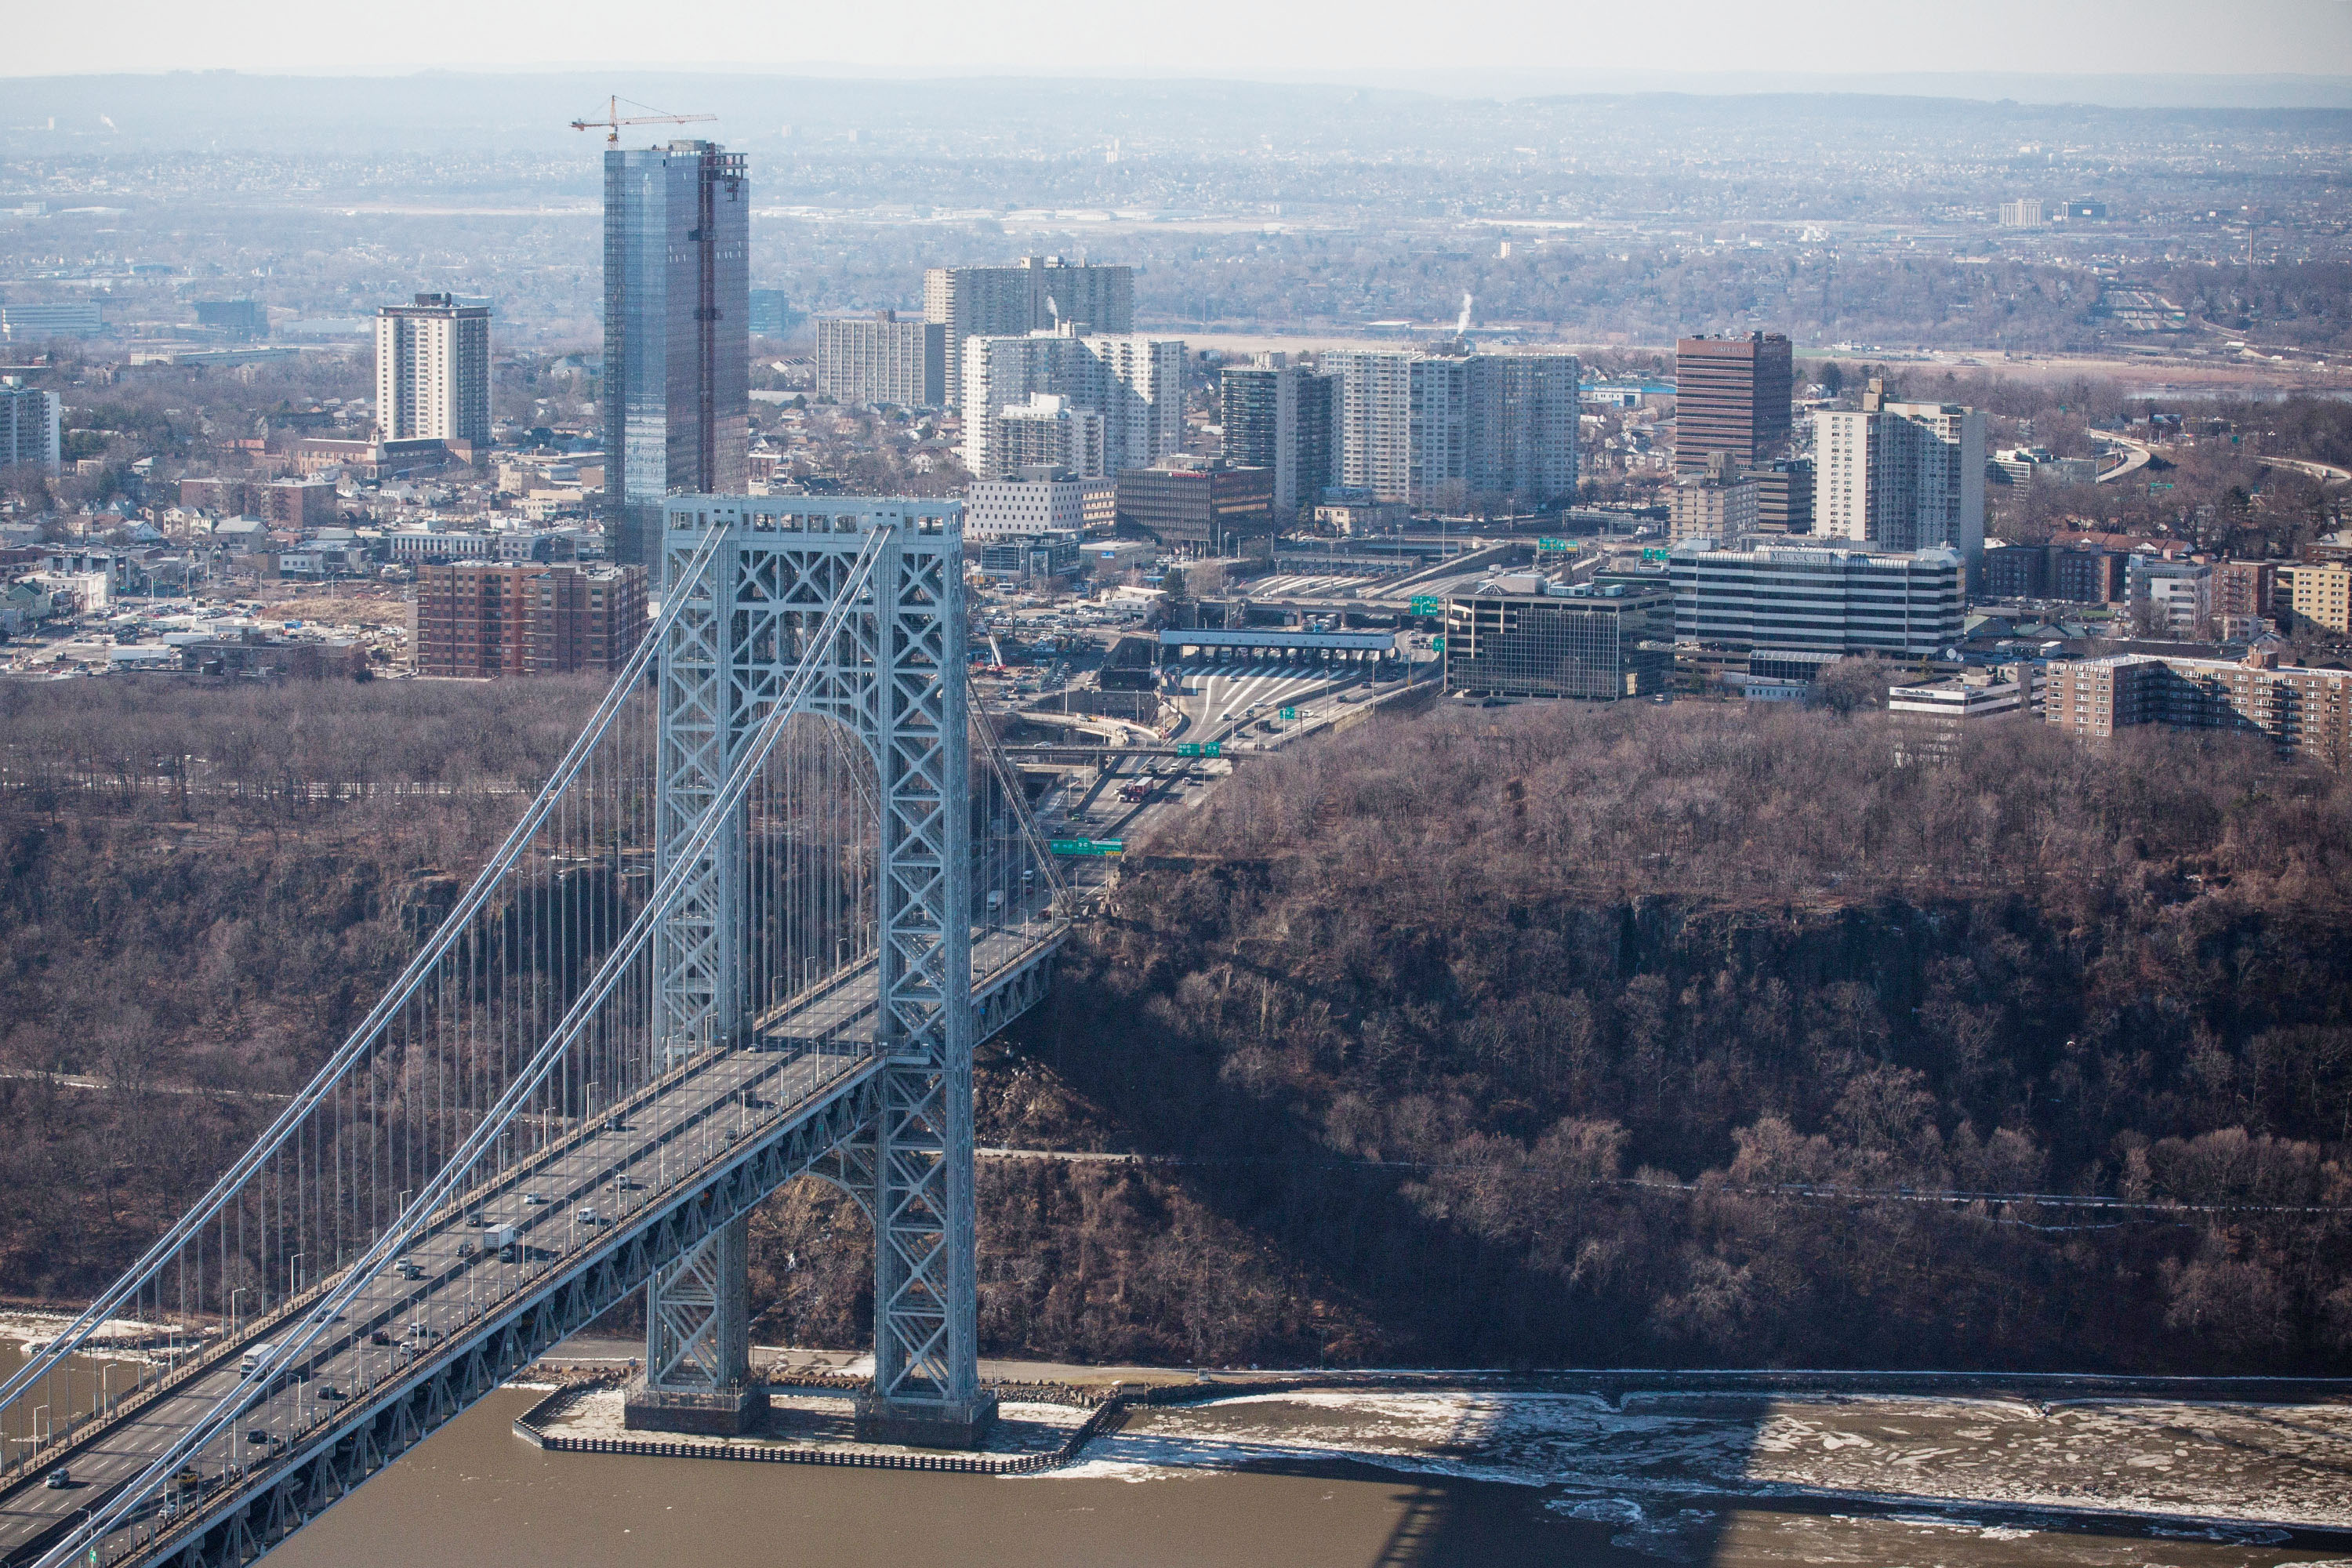 The New Jersey side of the George Washington Bridge, which connects Fort Lee, NJ, and New York City.